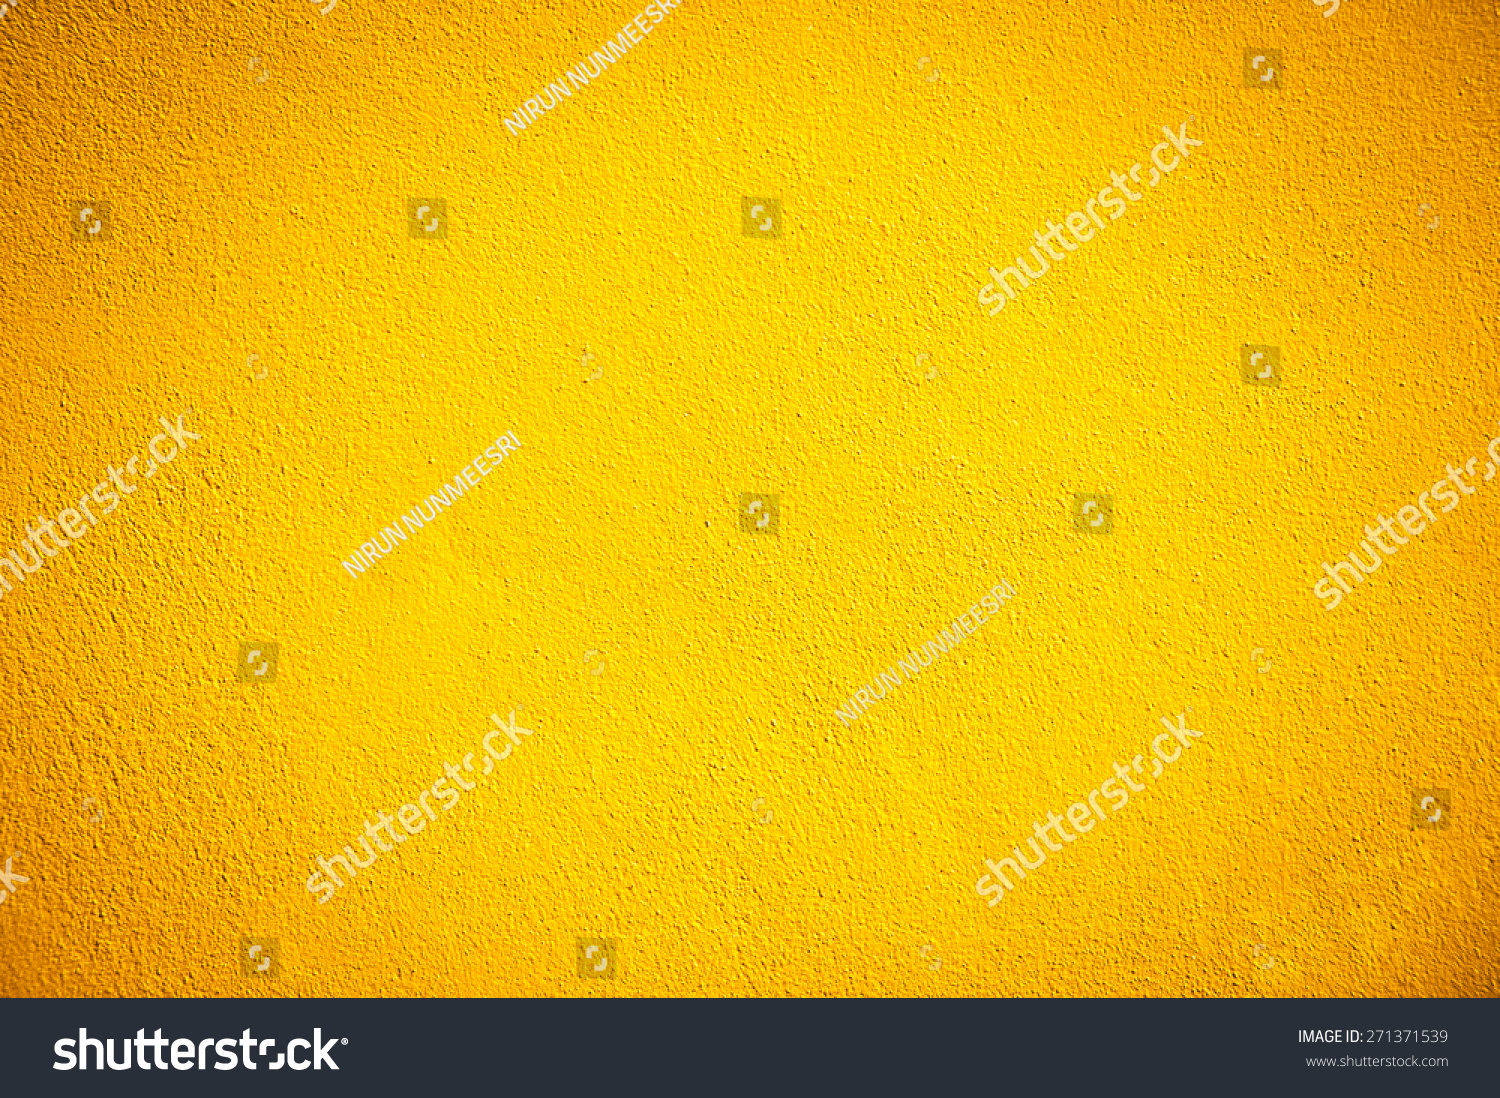 light gold vintage background - photo #26